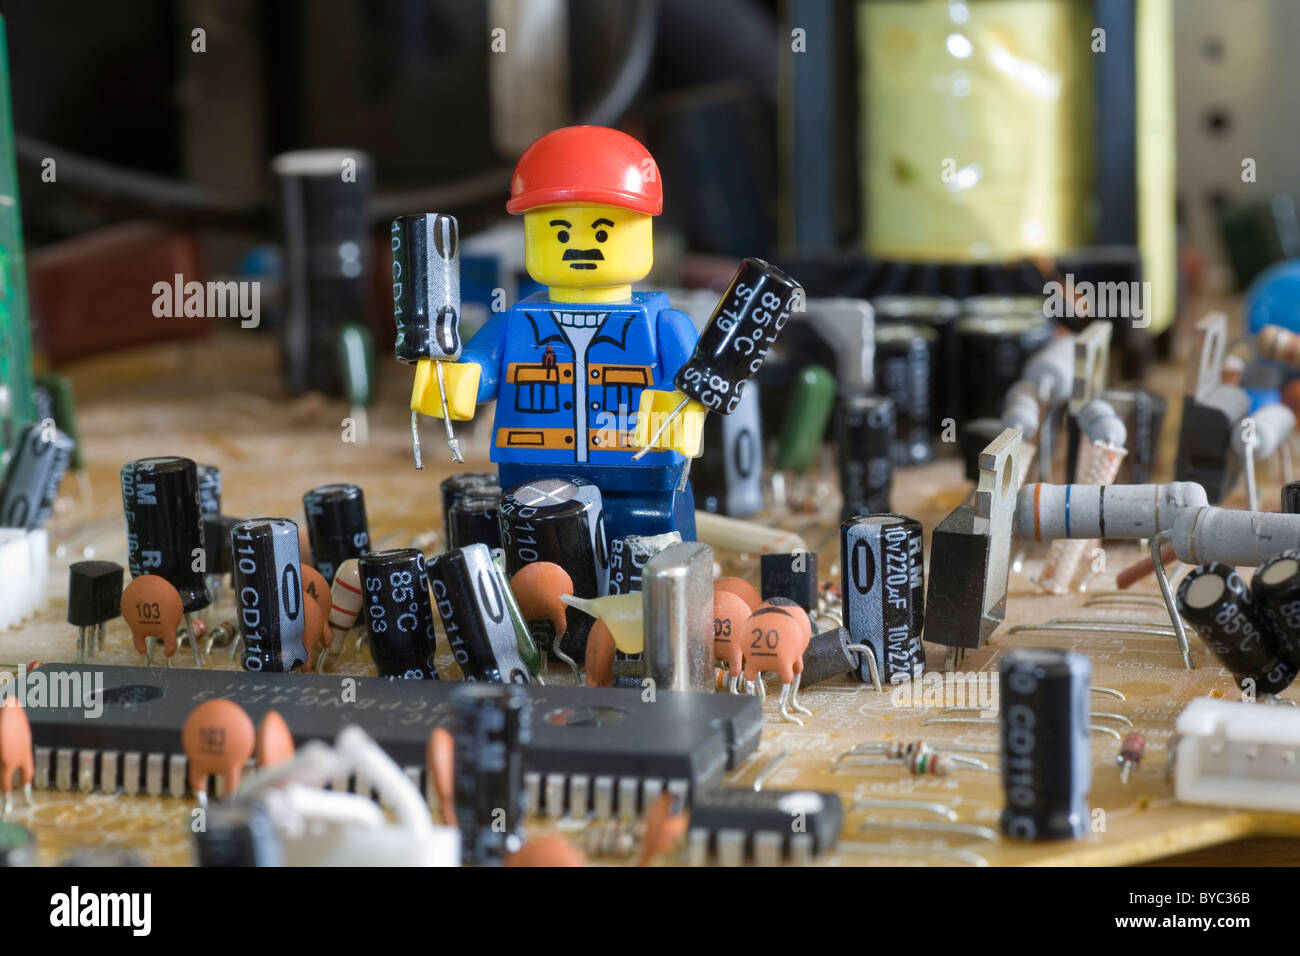 Lego Engineer On Electronic Circuit Stock Photos   Lego Engineer On     lego engineer standing on an electronic circuit board holding two  electrolytic capacitors    Stock Image